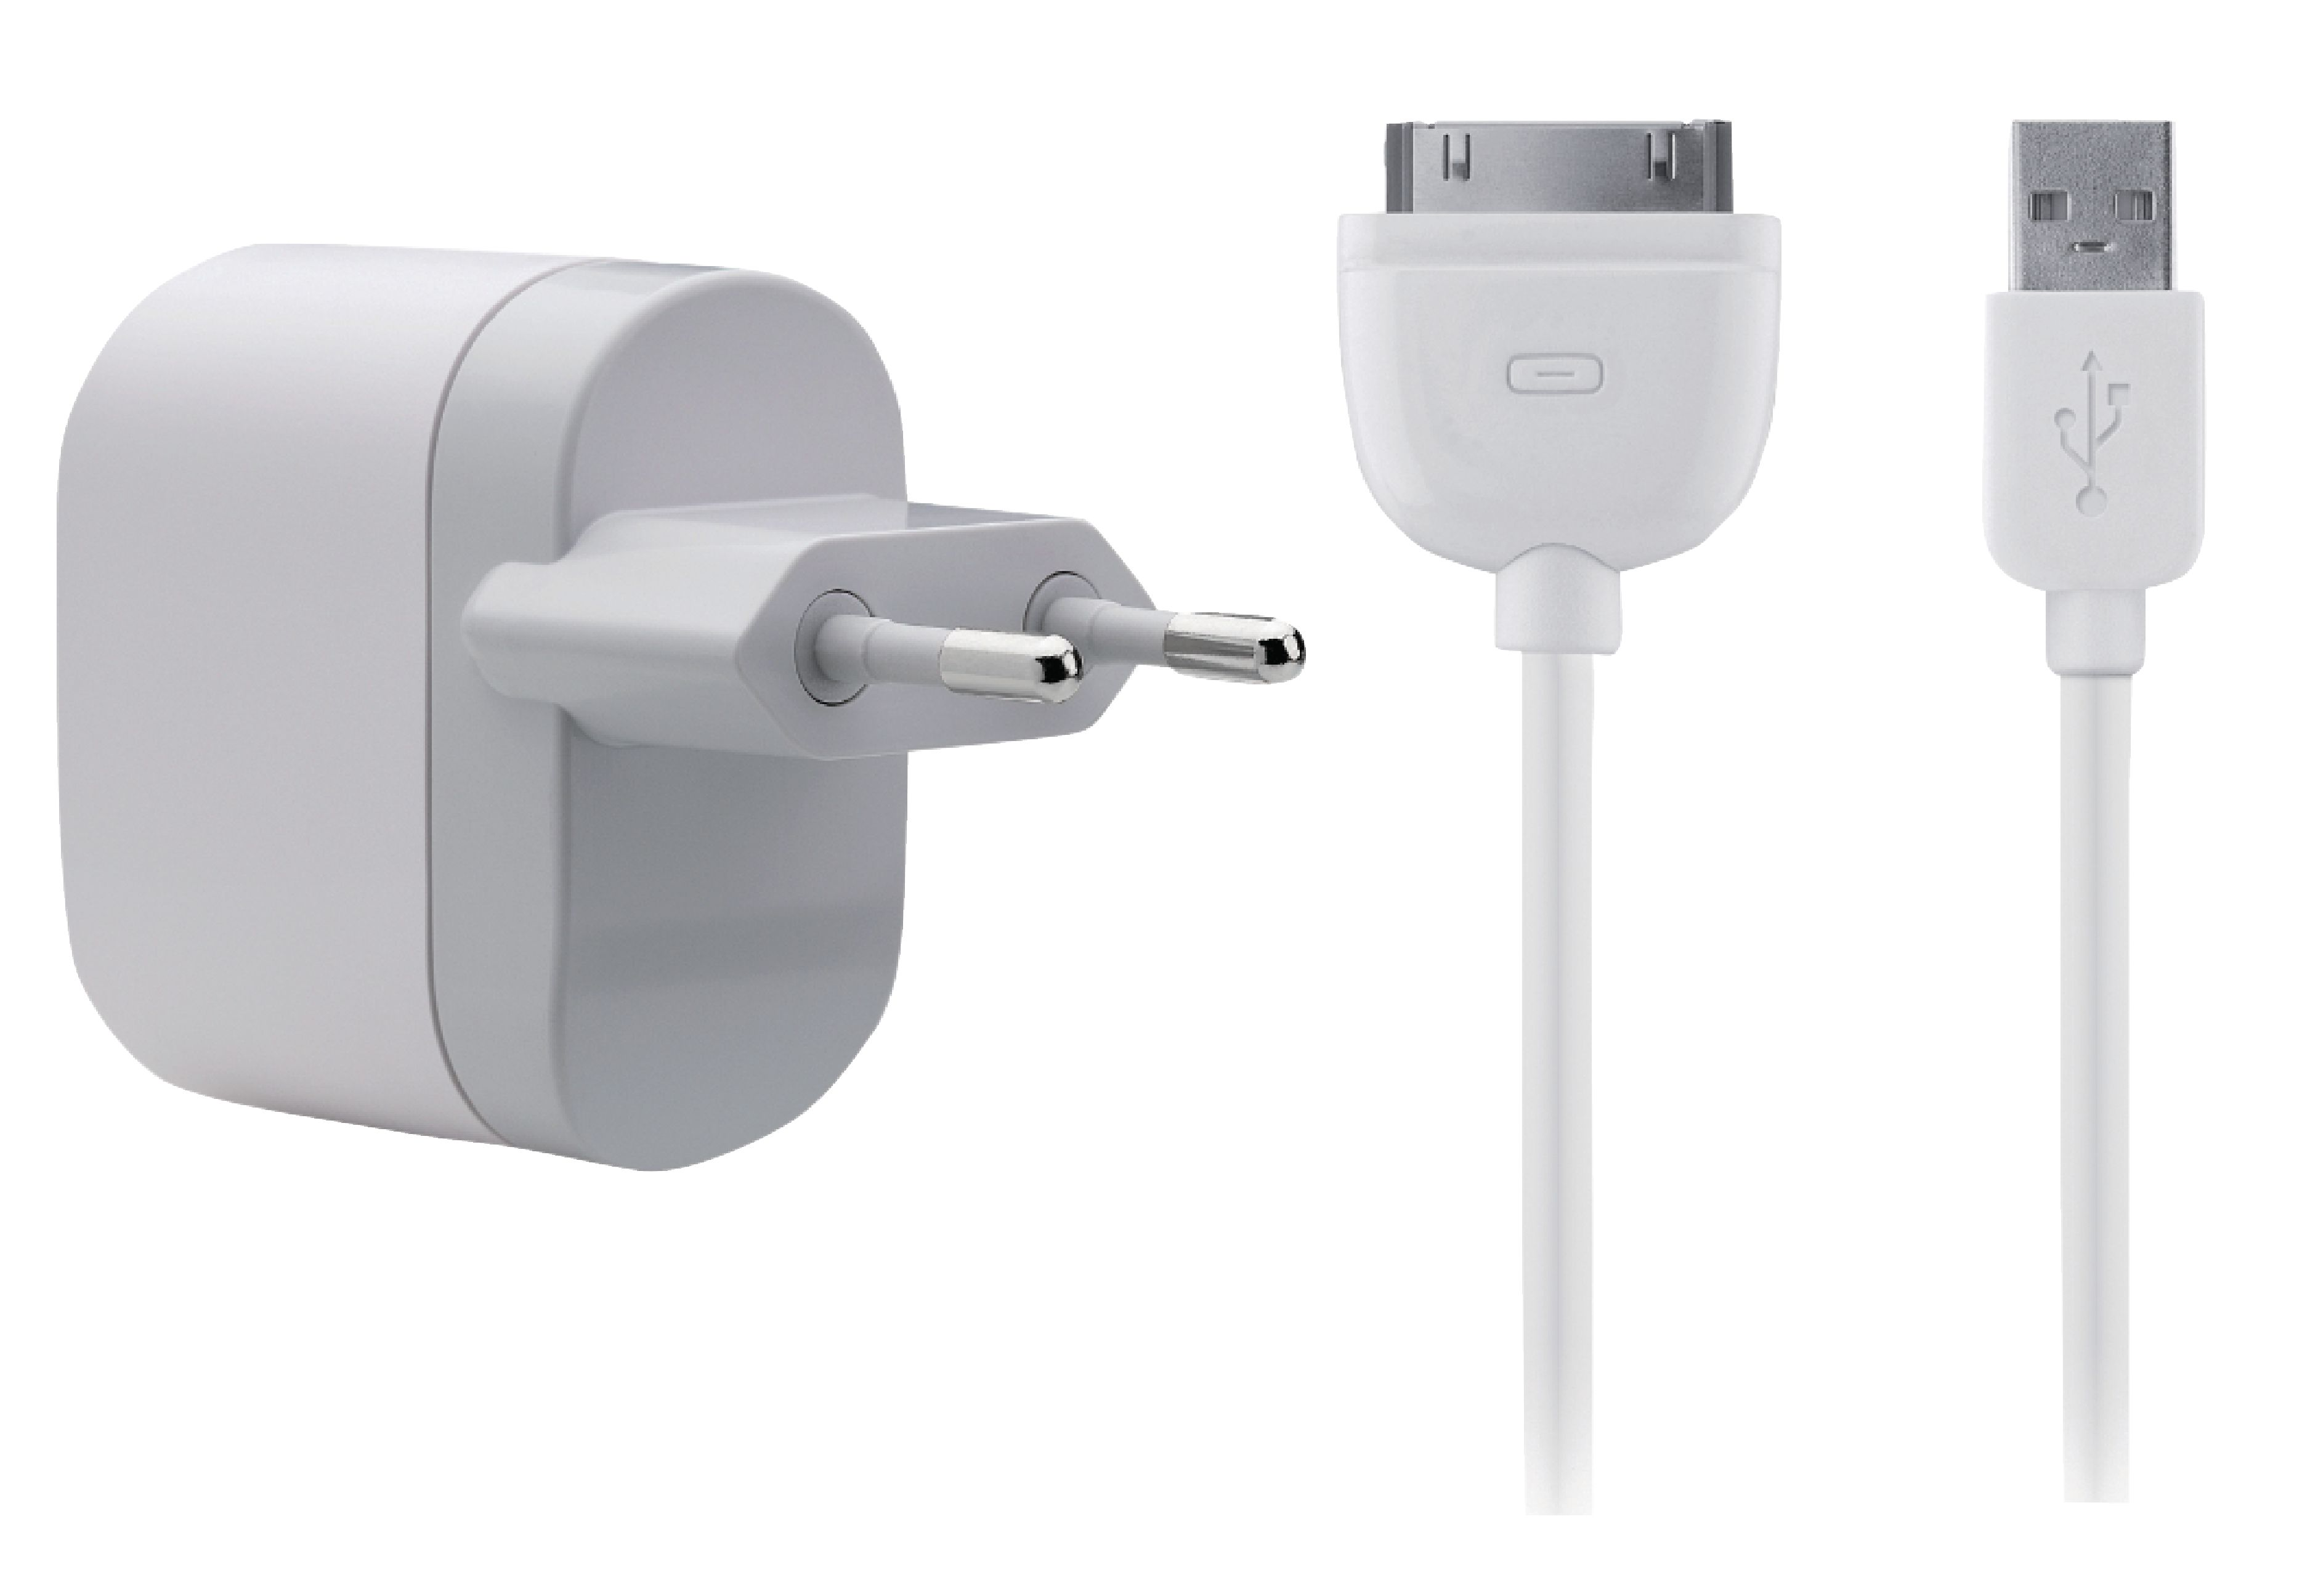 Wall Charger 1 Output 2.1 A 2.1 A USB WhiteGrey | Nedis